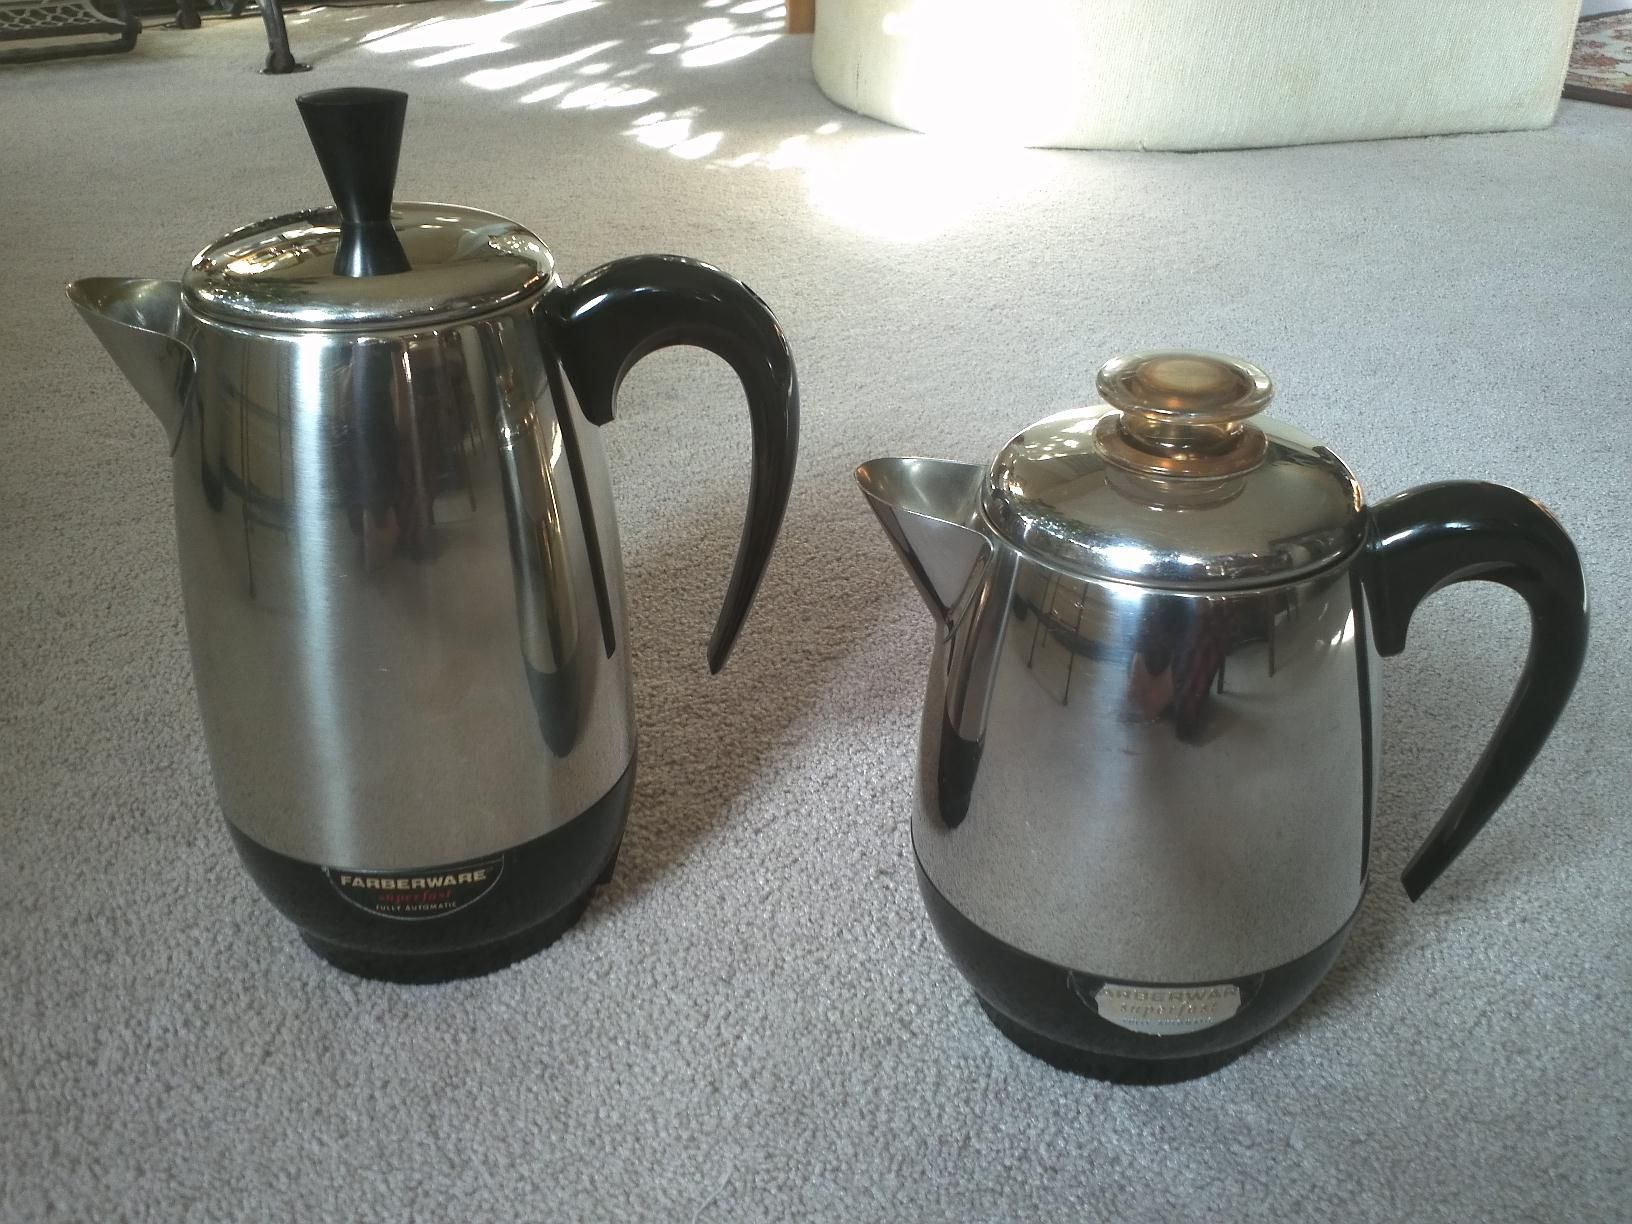 Vintage 1950s Super Fast Coffee Percolators From Farberware Of